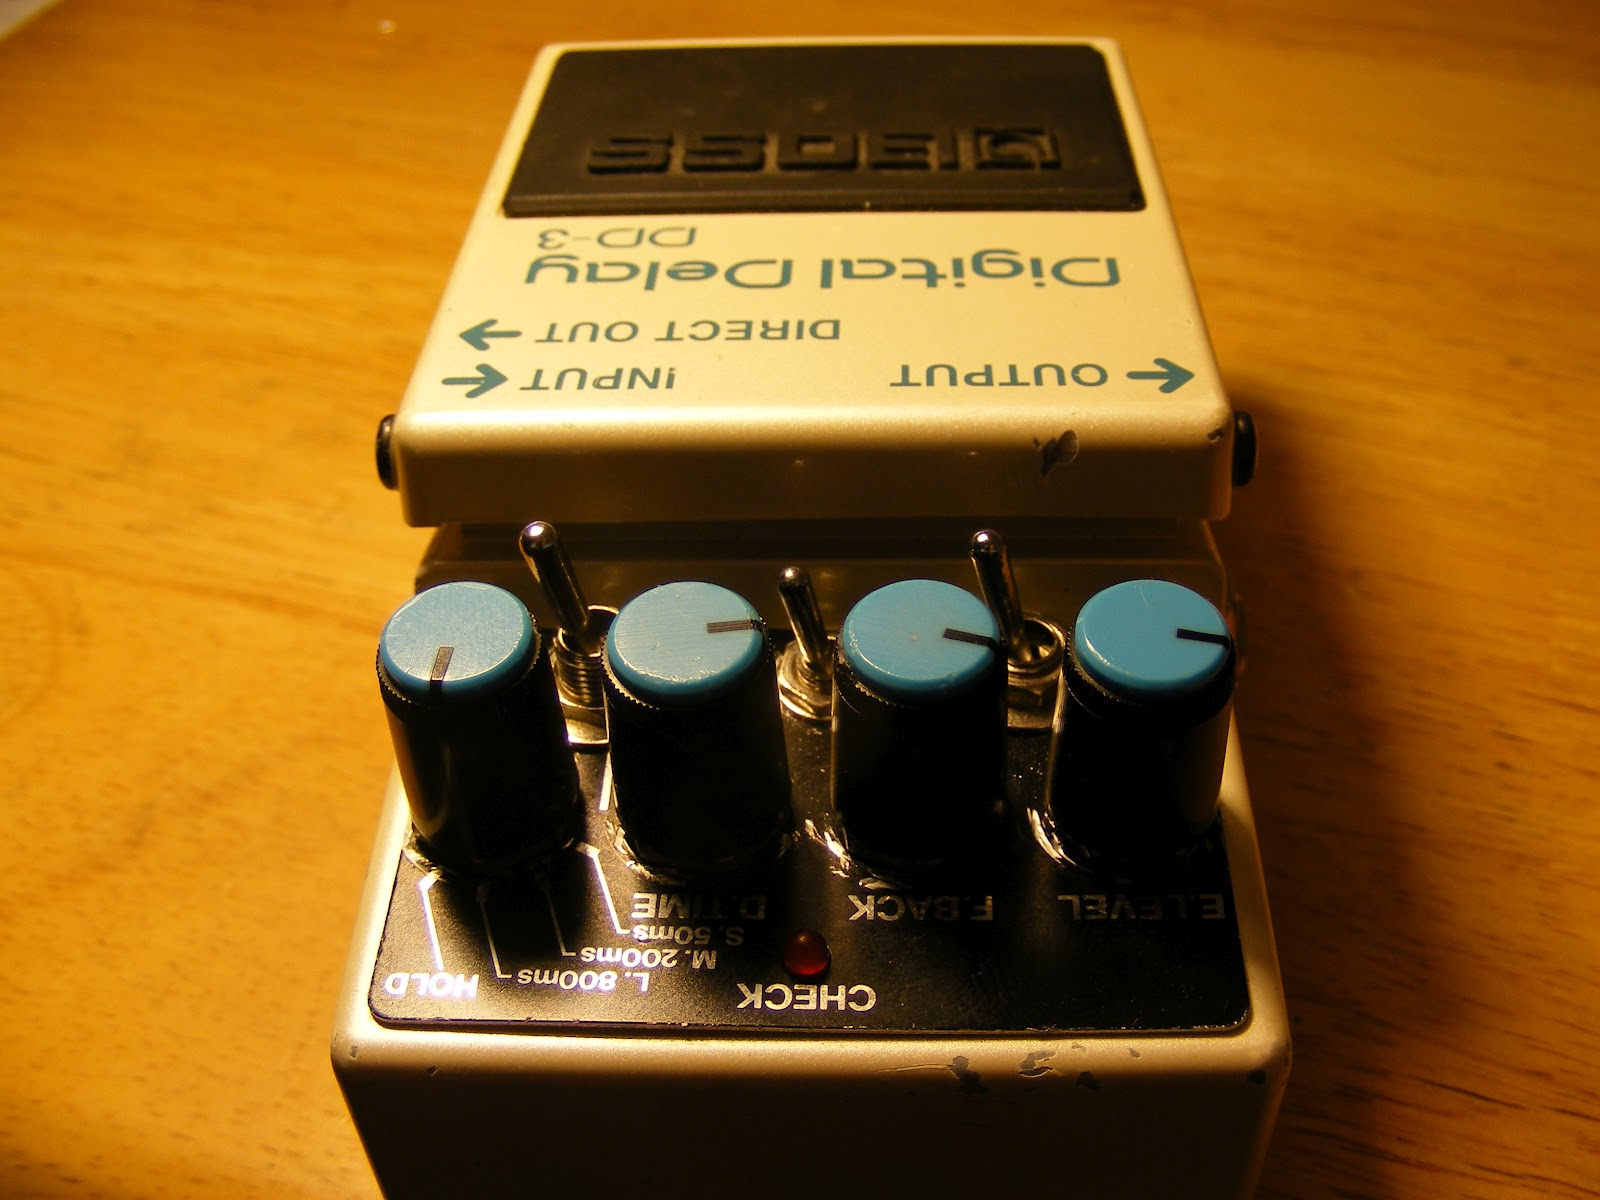 Boss DD-3 Digital Delay Alchemy Audio Mod Service Only No Pedal Included